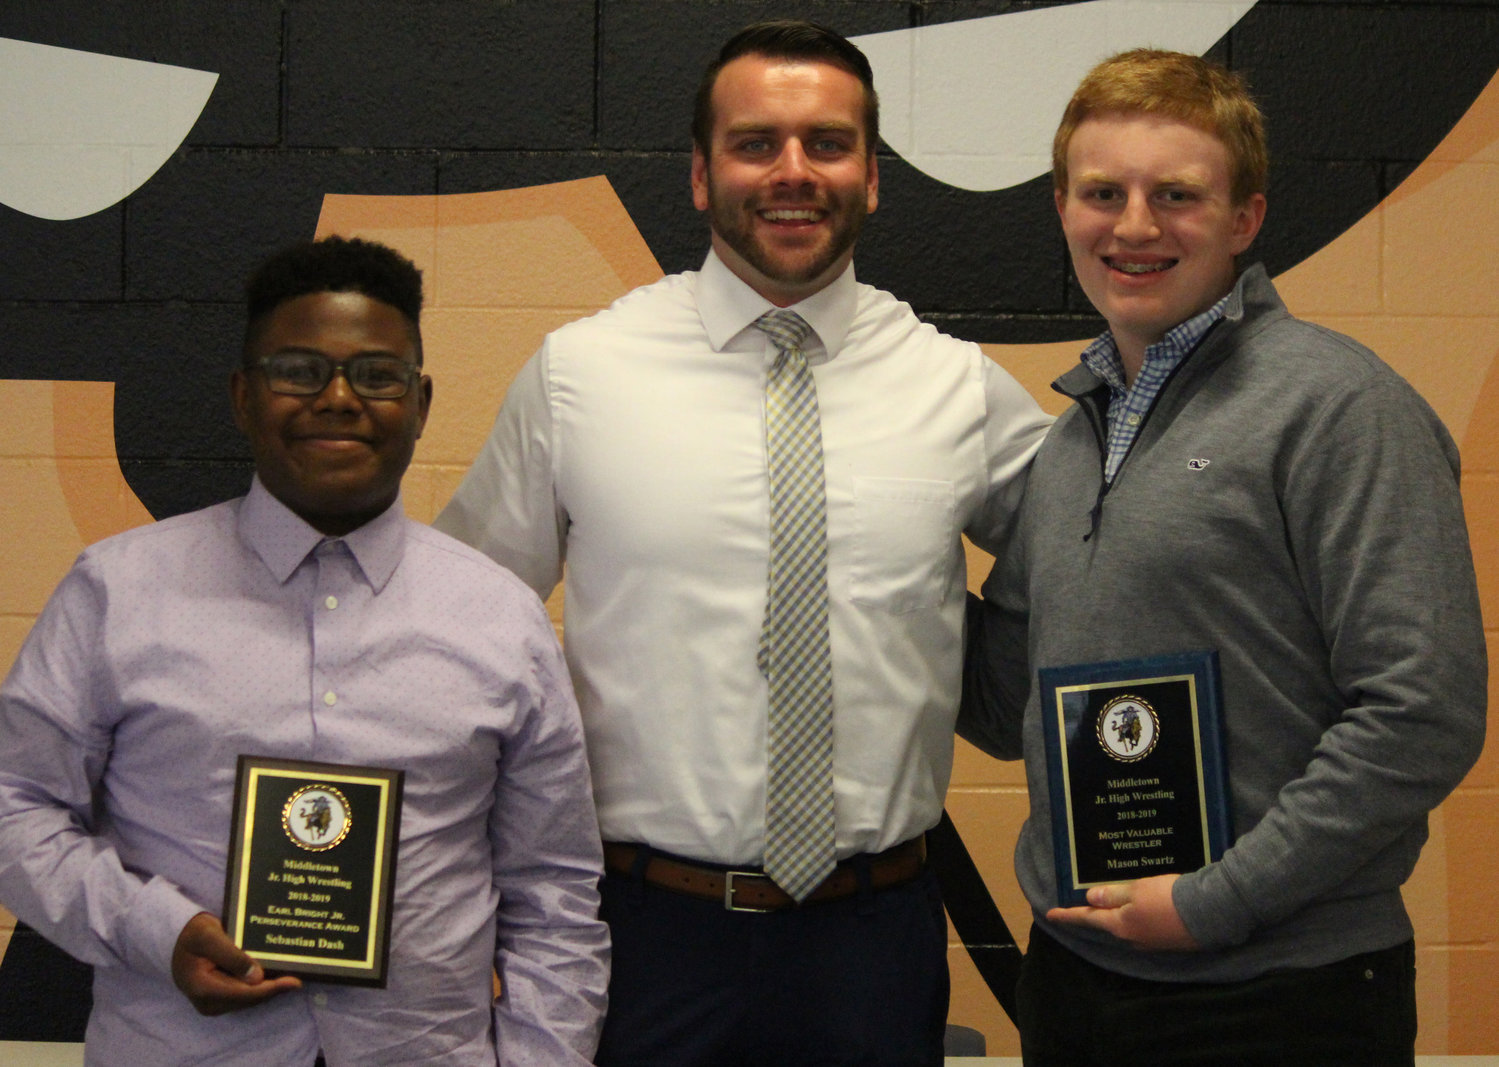 Junior high wrestling awards included Sebastian Dash (Earl Bright Jr. Perseverance Award), Coach Rob Brodish, and Mason Swartz (Most Valuable Wrestler Award).